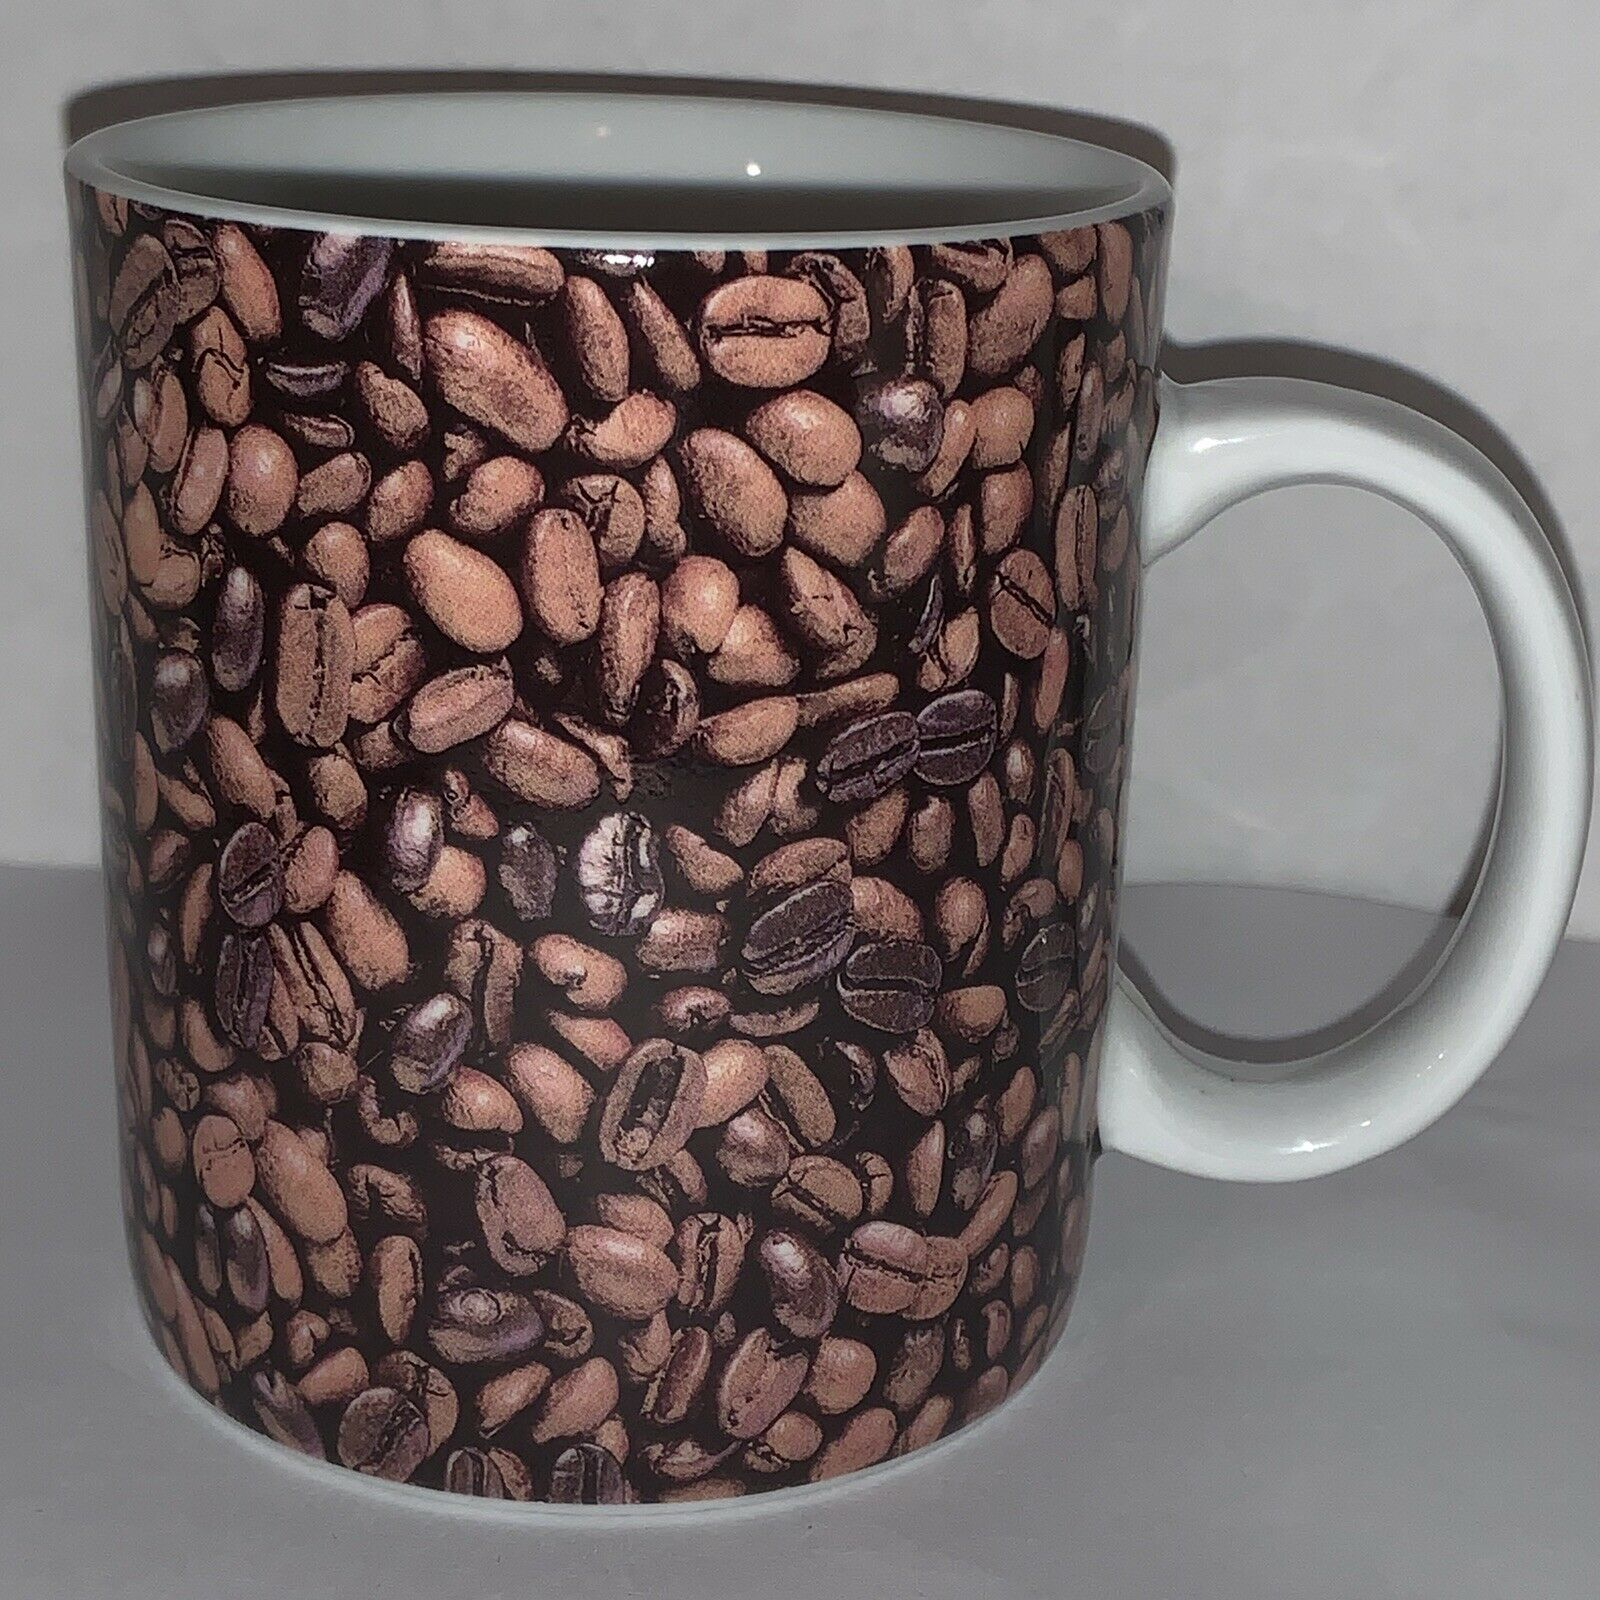 Starbucks Original 2007 Coffee Cup Mug Tea Coffee Bean